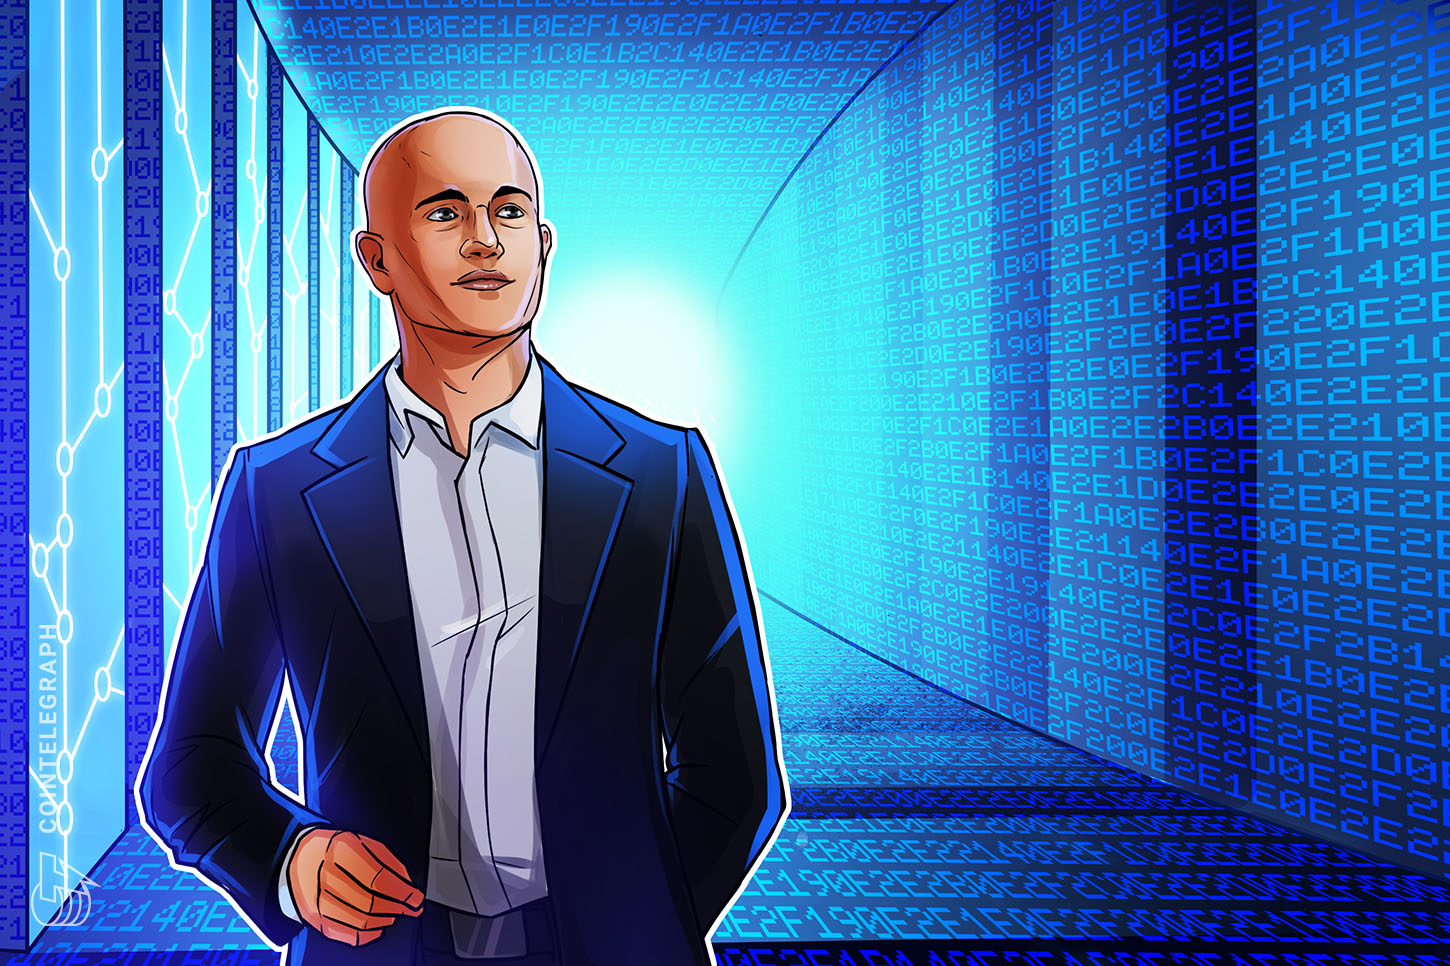 Coinbase CEO prompts furious accusations of hypocrisy as he pushes political misinformation